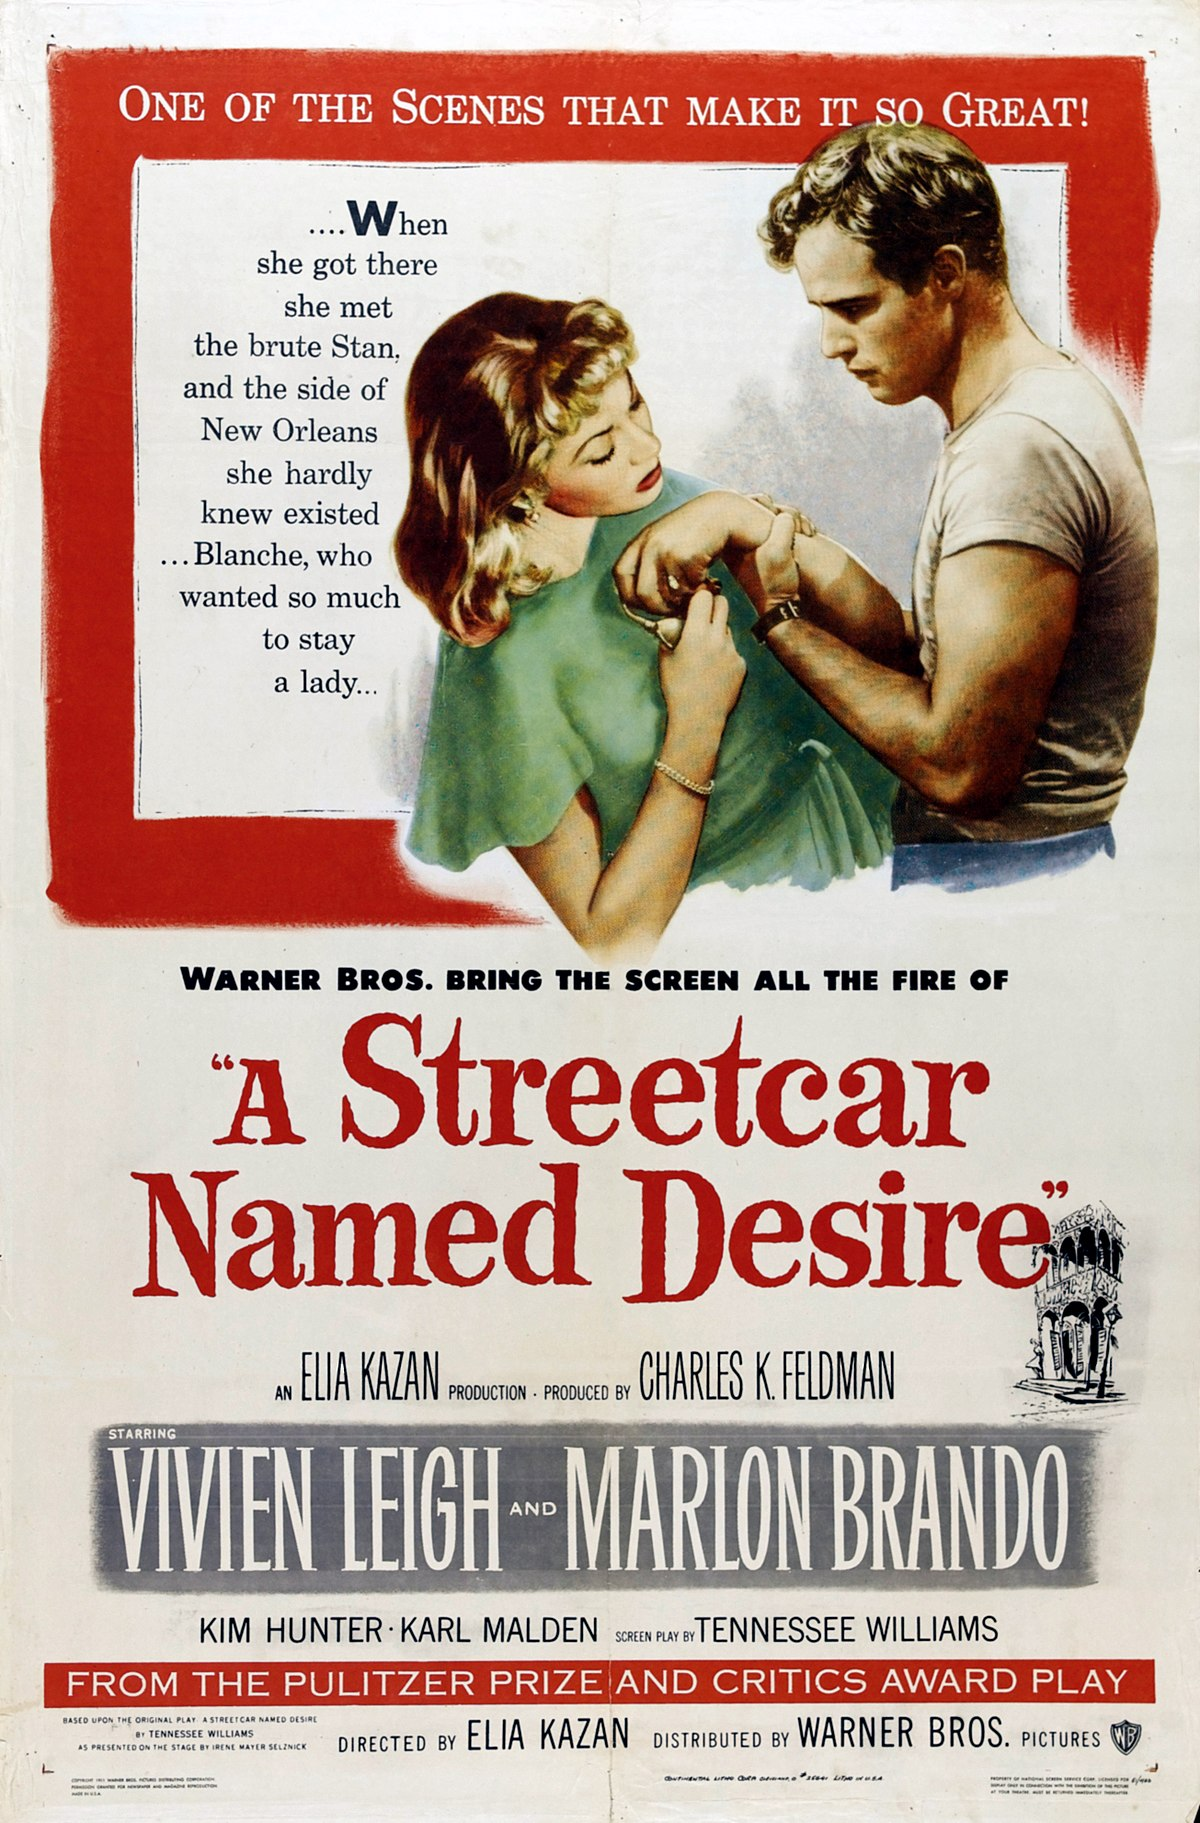 A Streetcar Named Desire (1951 film) - Wikipedia